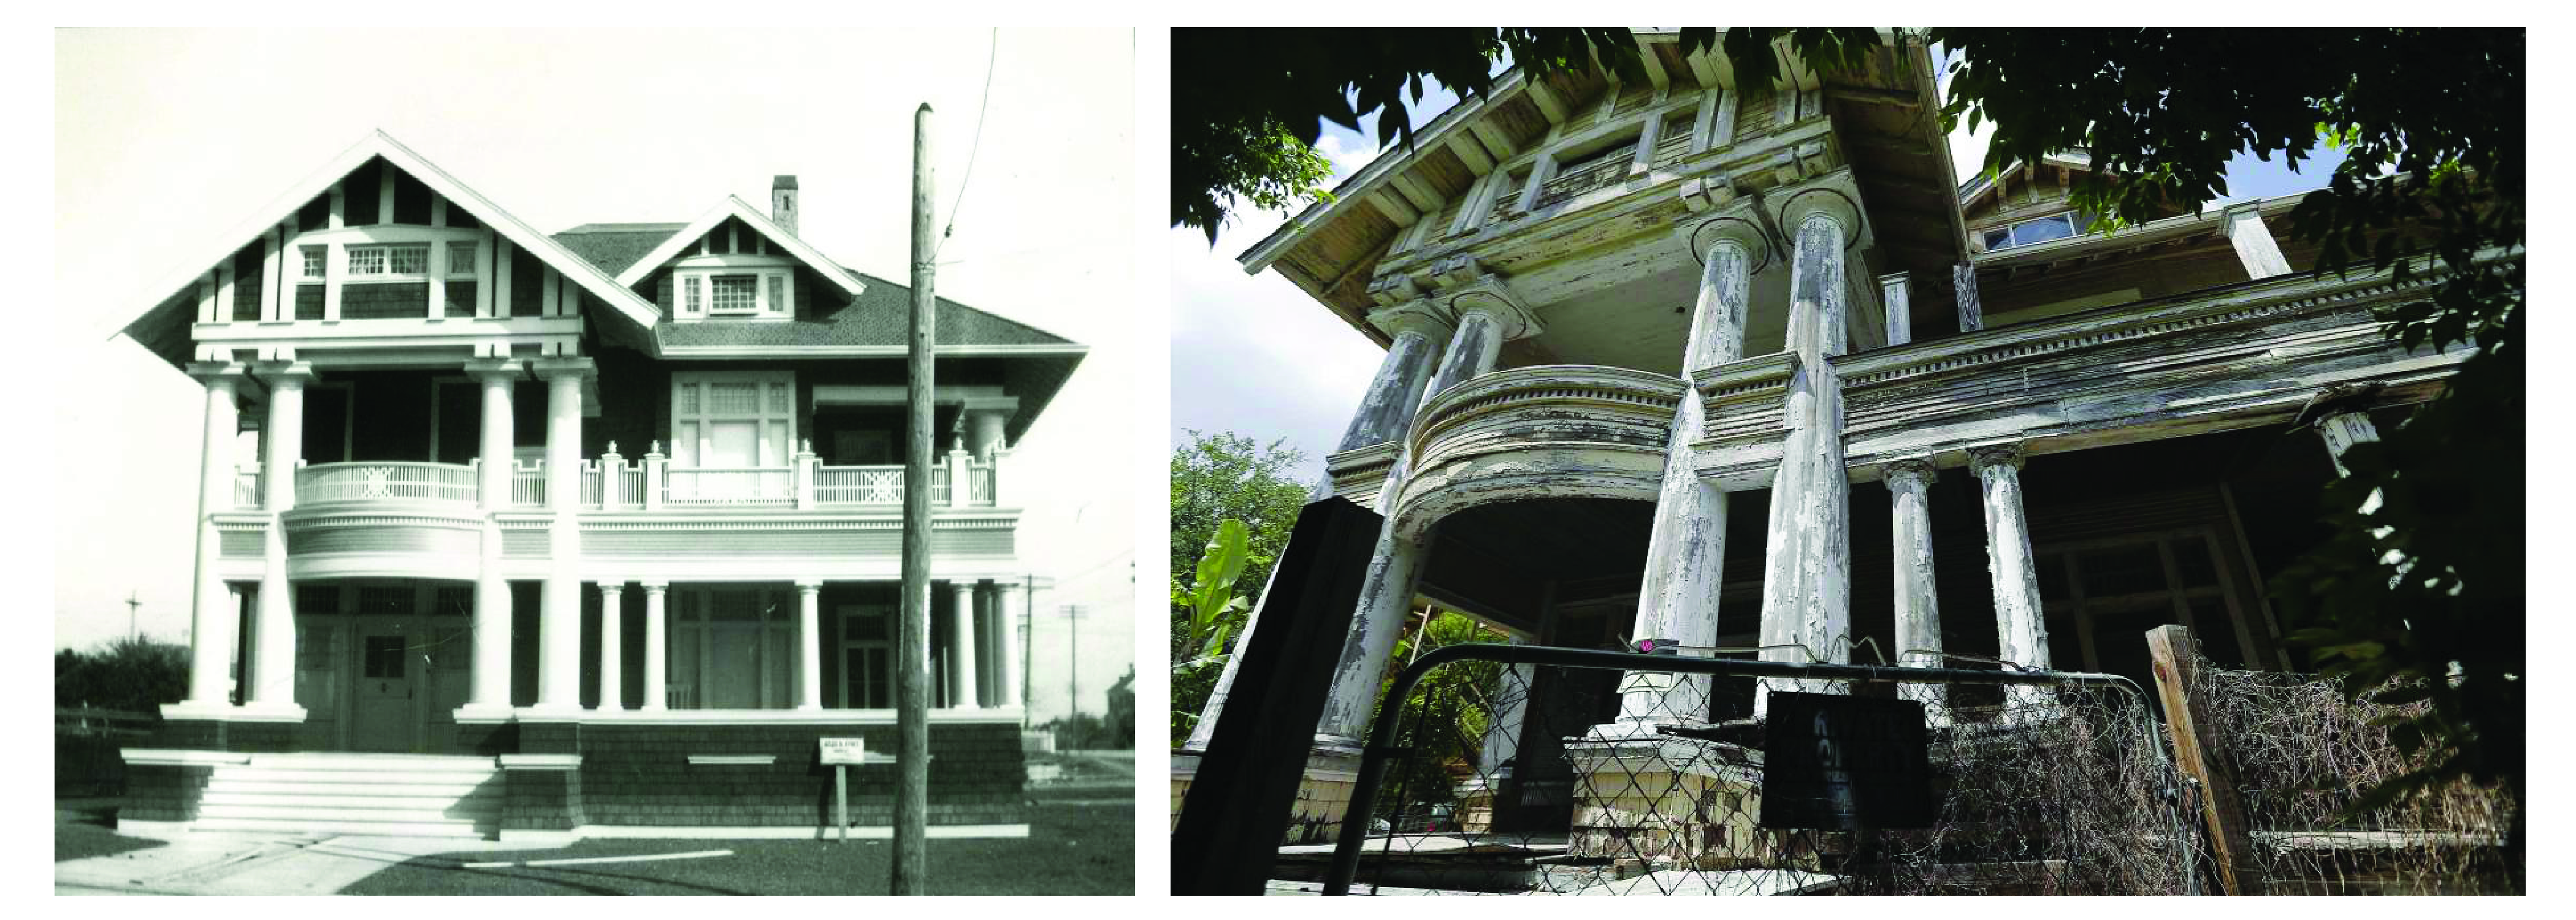 Kelso House 1906 (Credit: Alexander Architectural Archives at the UT Austin)  VS 2019 (Credits: PoP)